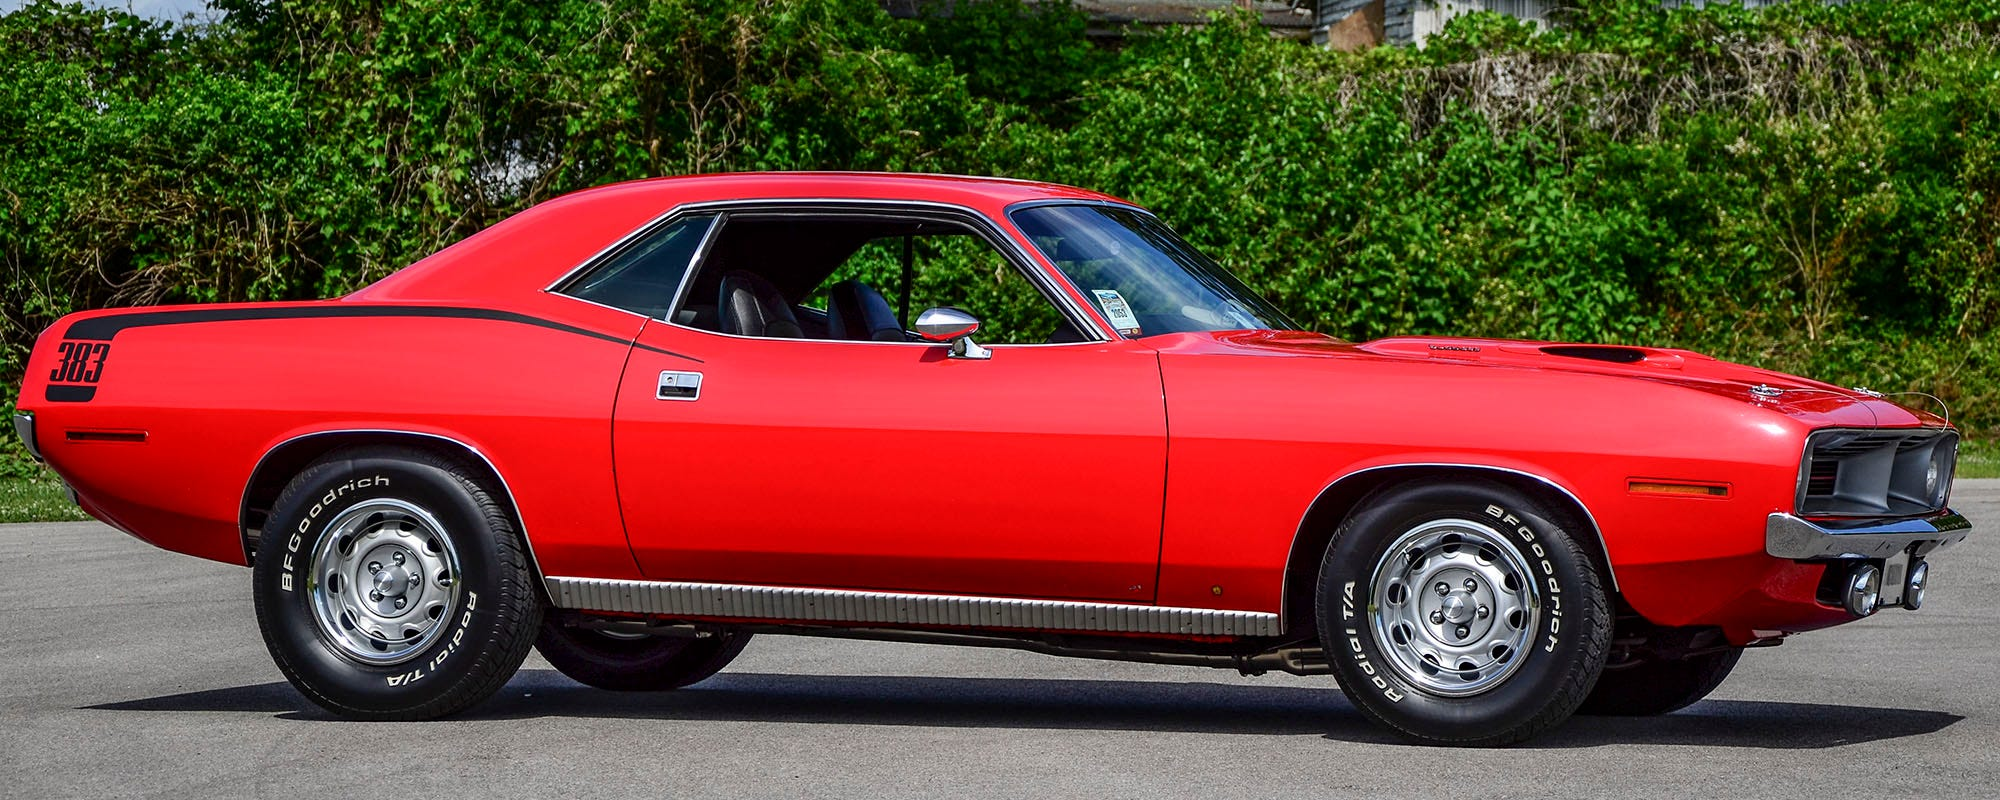 1970 Plymouth 'Cuda with Bf Goodrich Radial T/A tires